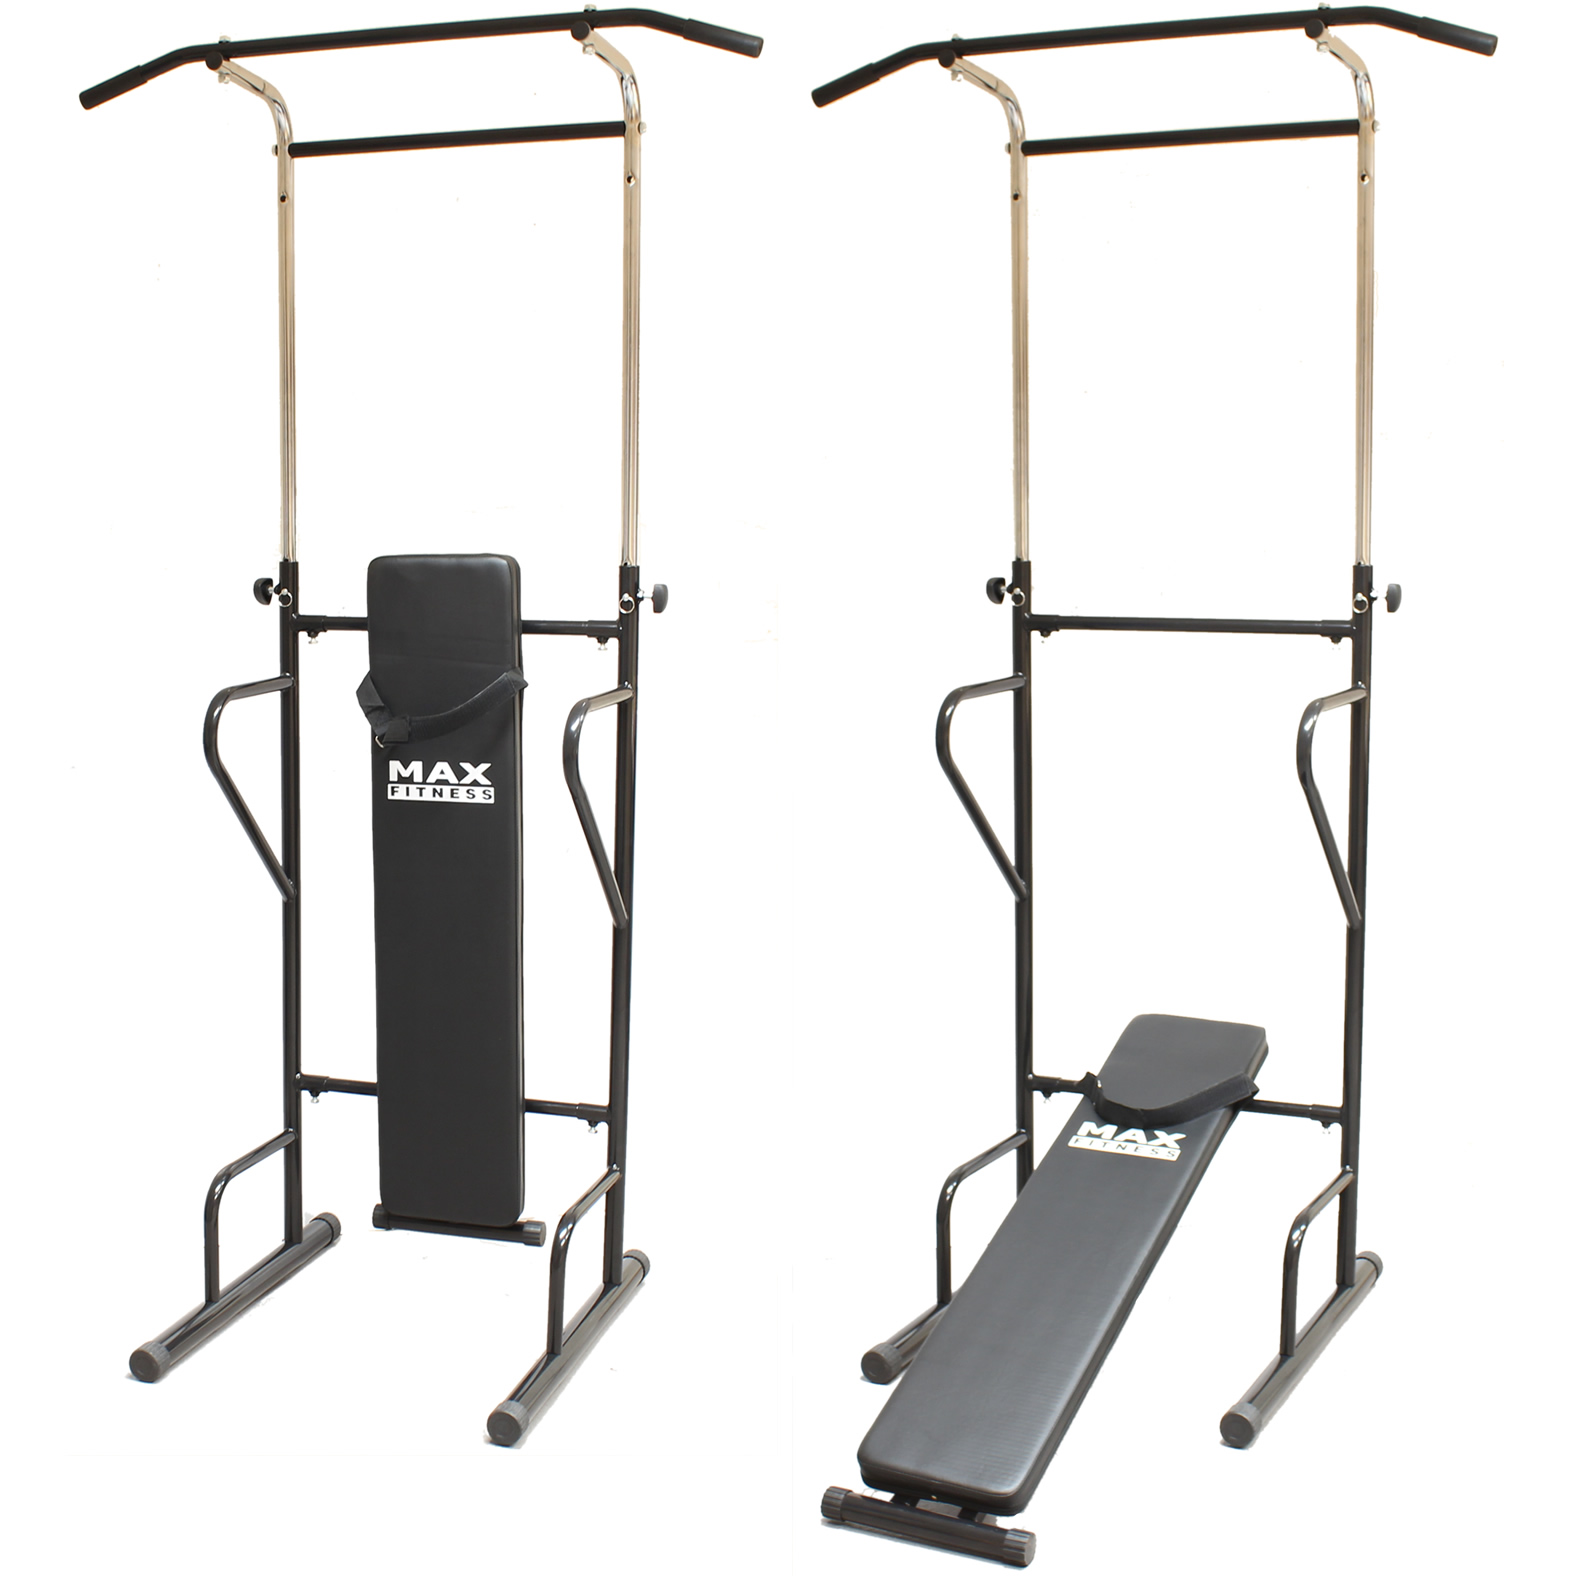 max fitness power tower push pull up bar press ups sit. Black Bedroom Furniture Sets. Home Design Ideas